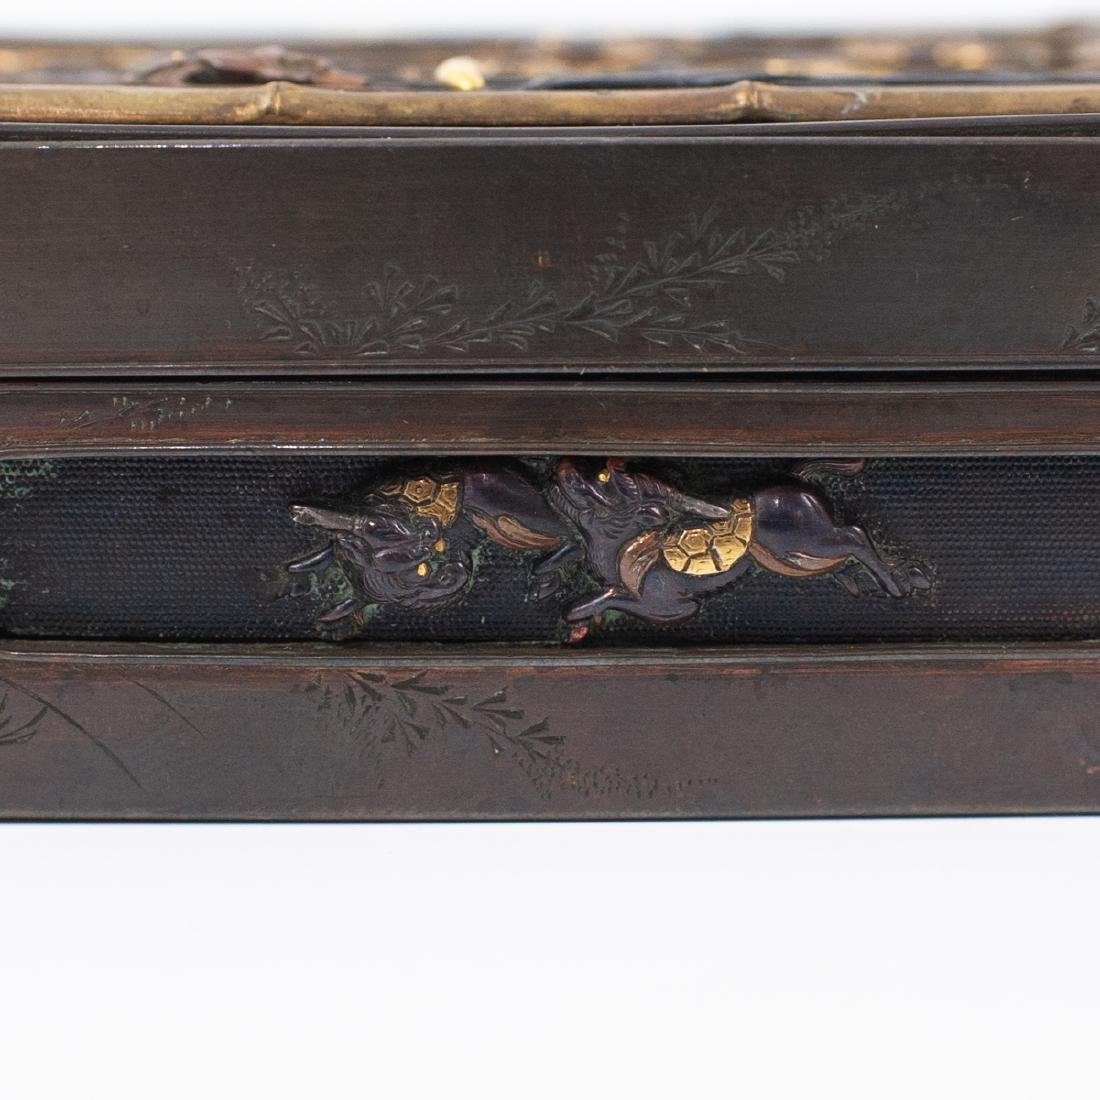 Japanese Meji Period Inlaid Bronze Box - 3